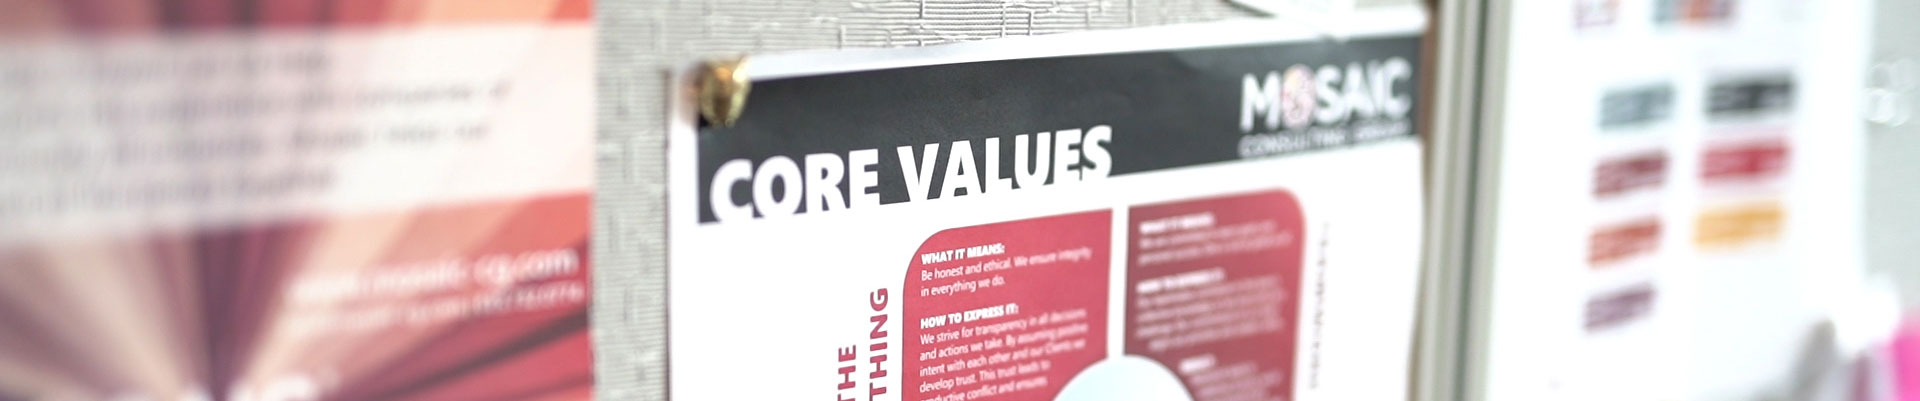 Clip Board that says Core Values